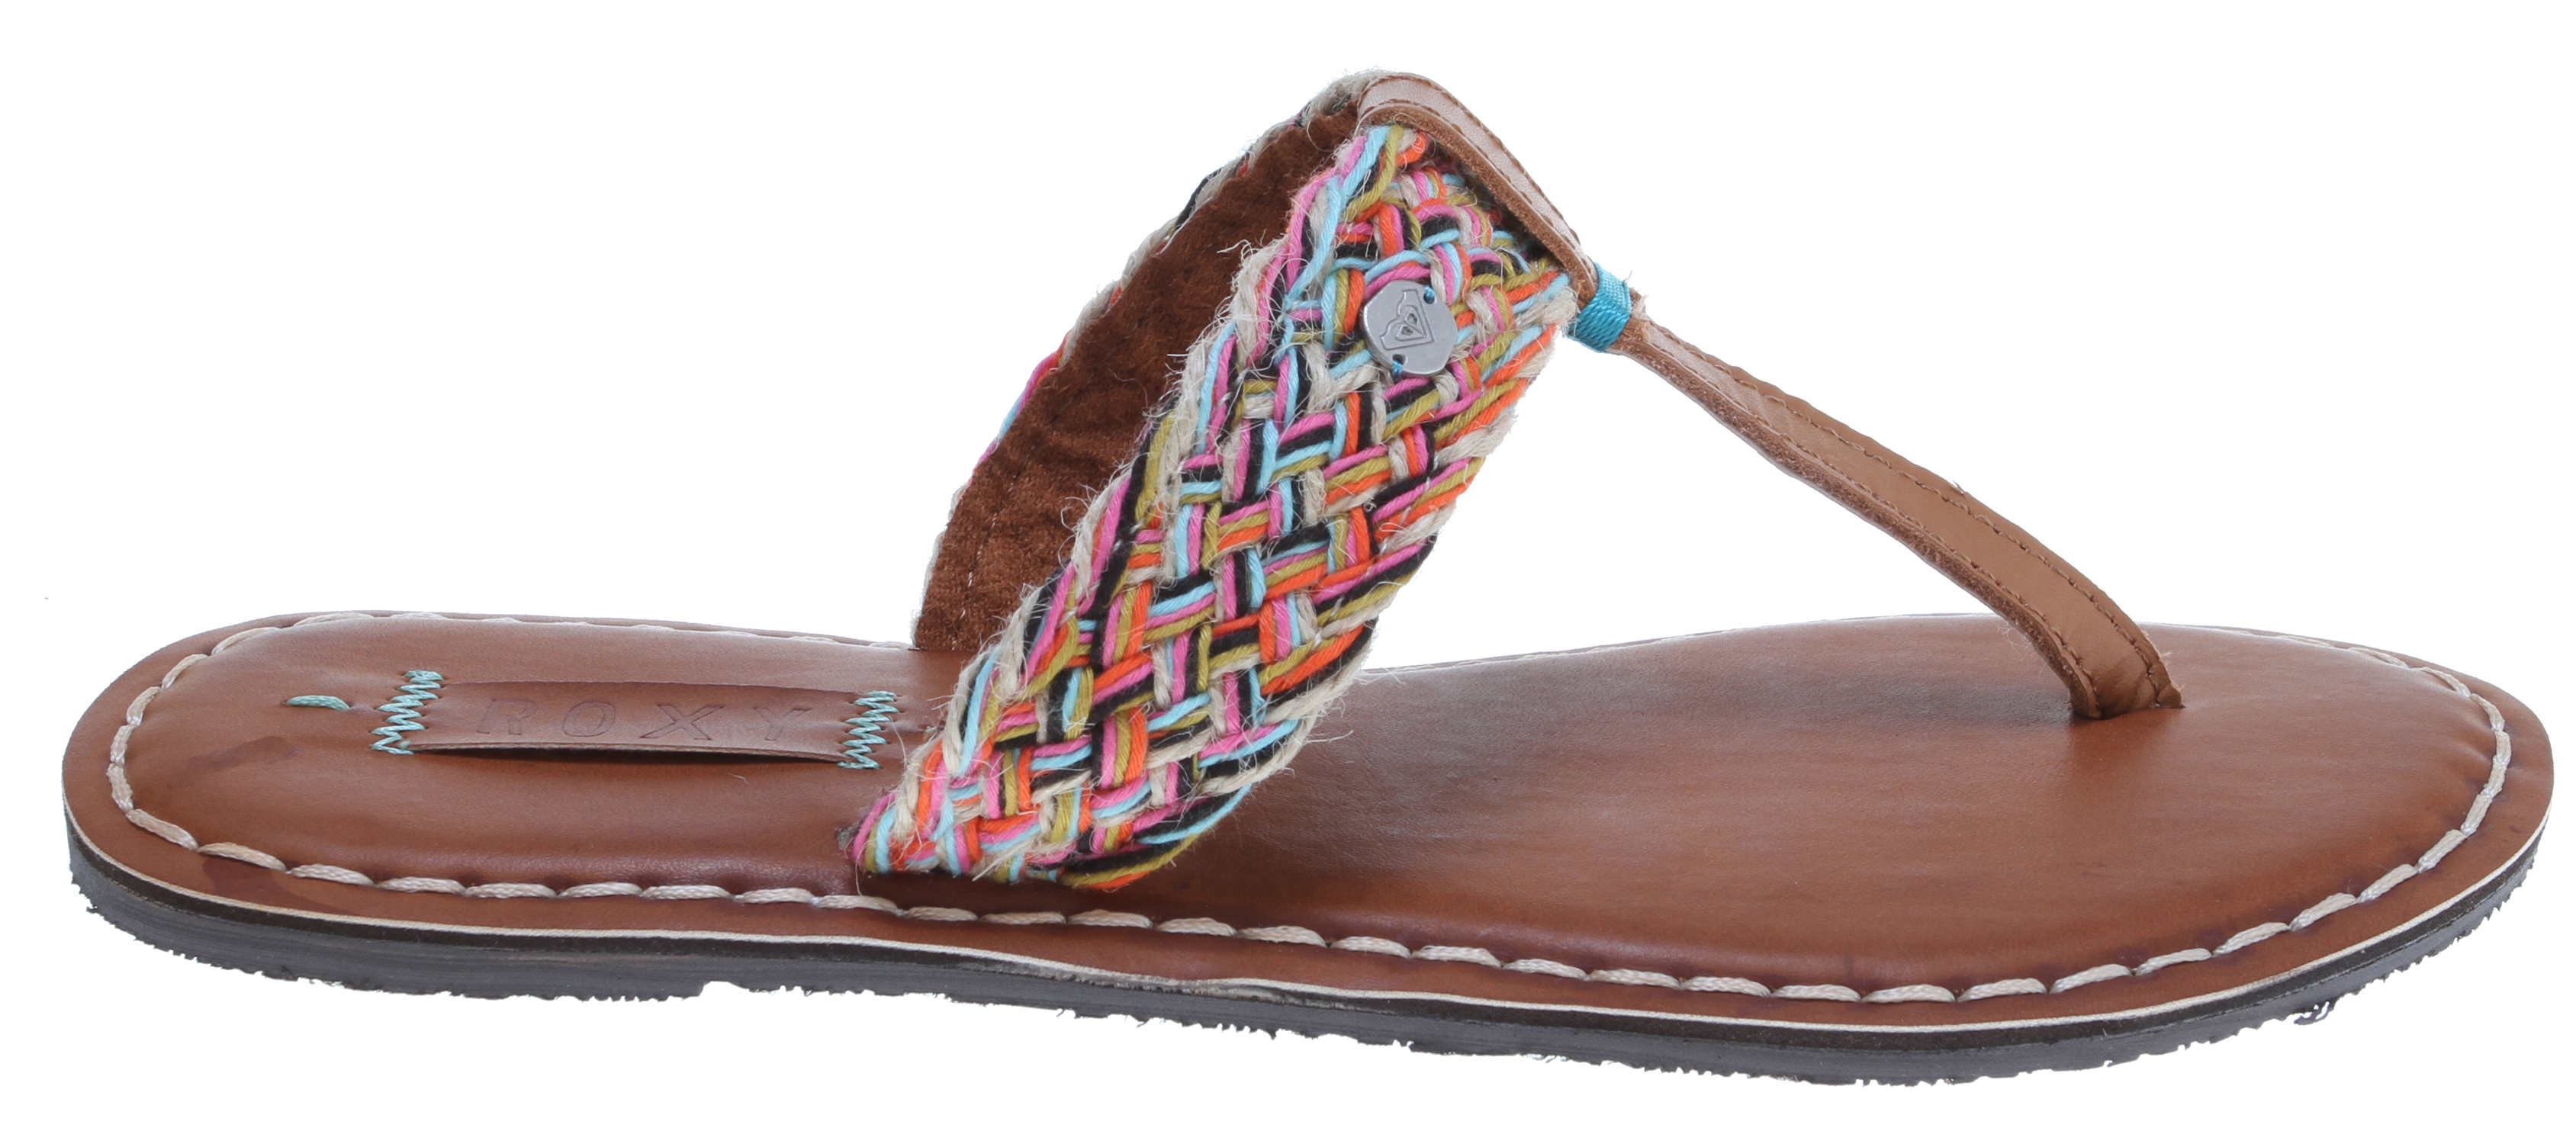 Surf Key Features of the Roxy Mykonos Sandals: Rope and leather braided upper Added stitch detail on toe post Burnished insole with more stitch detail Padded flexible construction Rubber outsole - $33.95